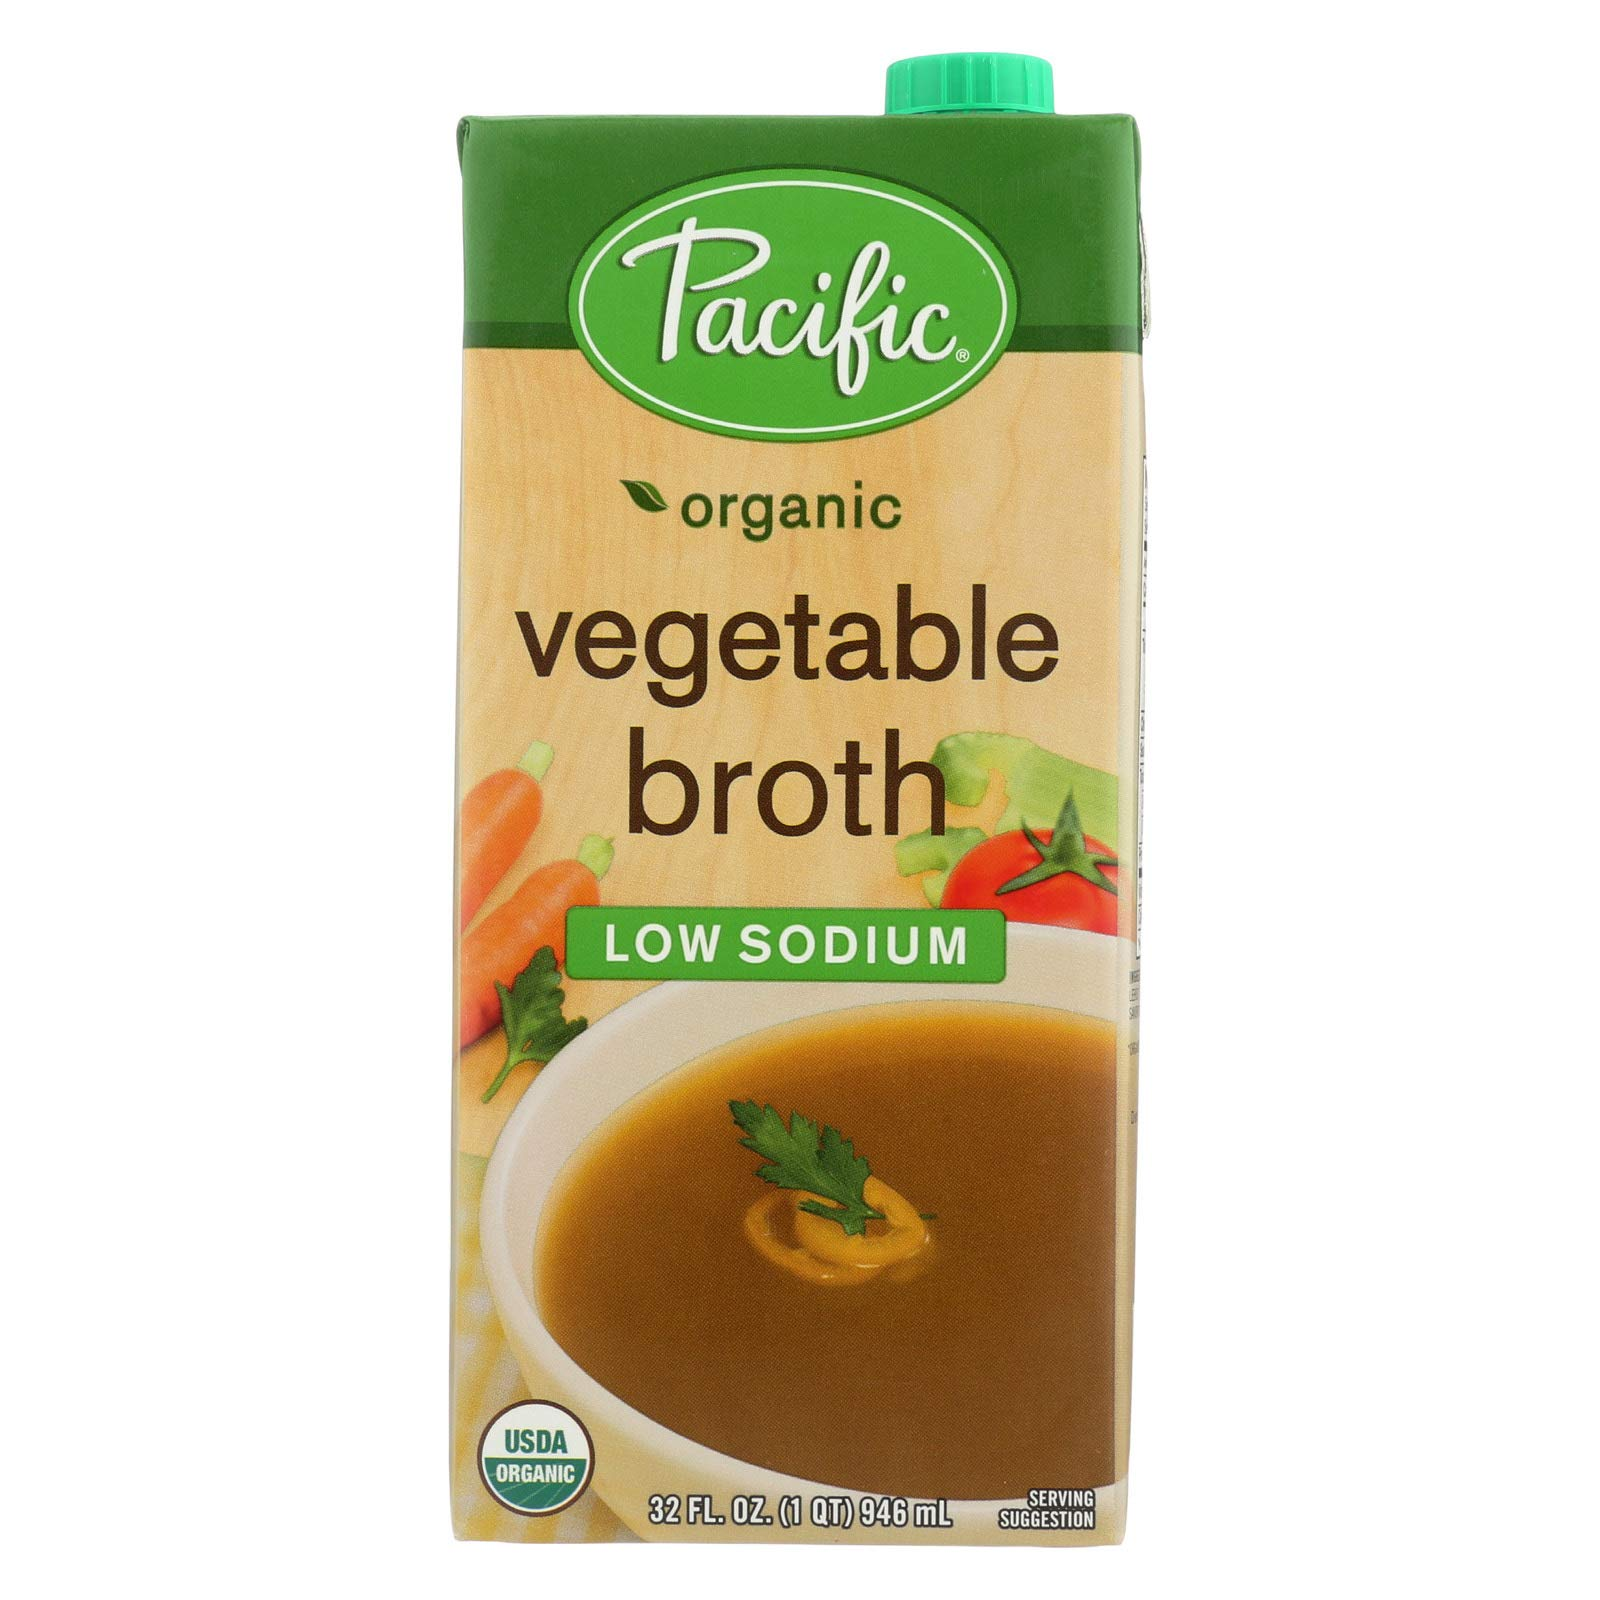 Pacific Natural Organic vegetable Broth Low Sodium (12x32 OZ) by Pacific Natural Foods